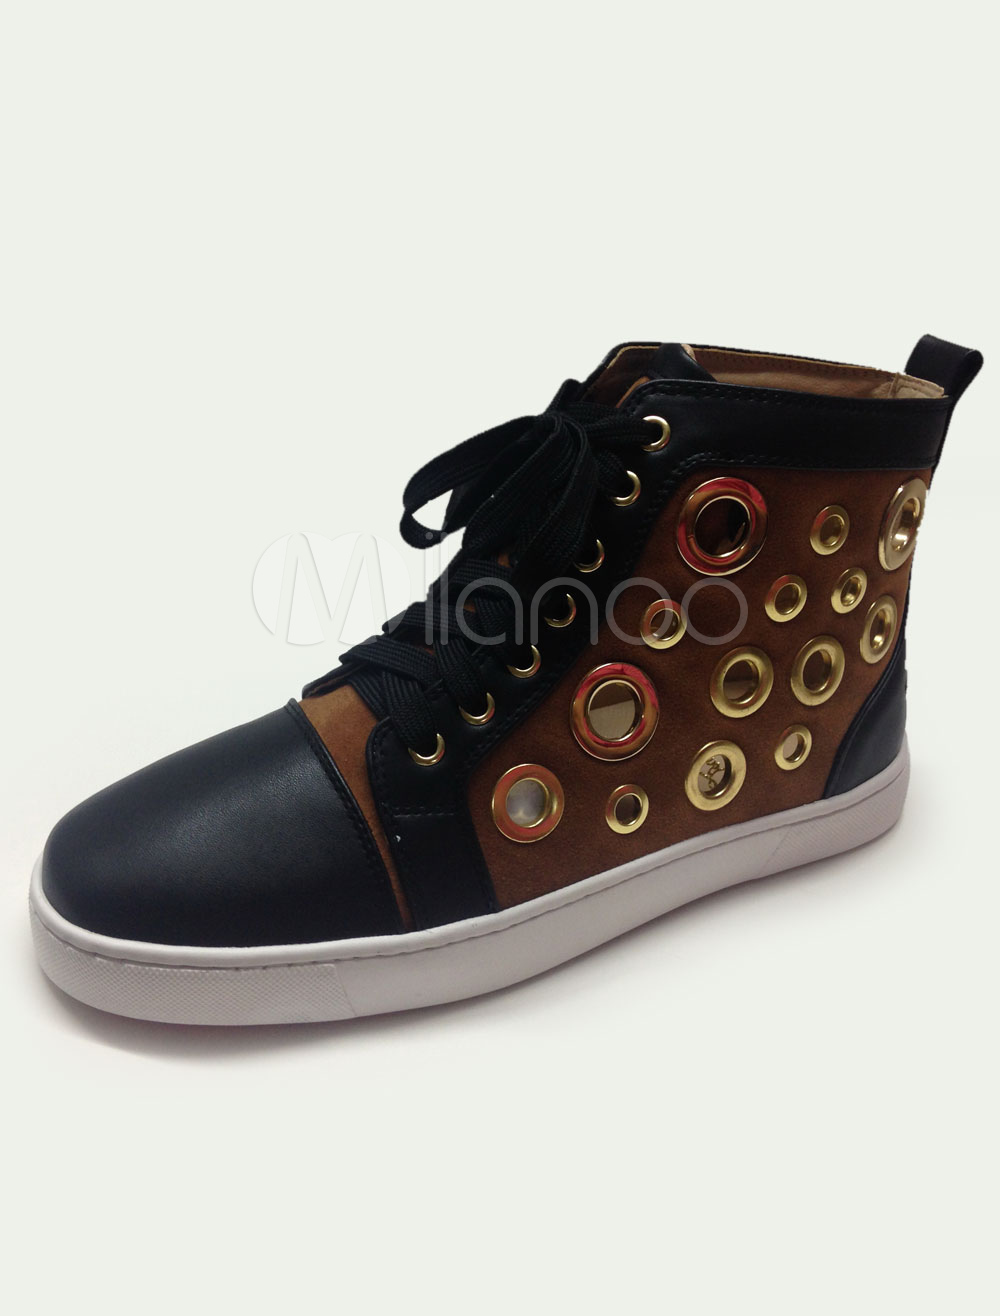 Cut Out Sneakers Multicolor Stud Lace Up Metal Details Leather Sneakers for Men